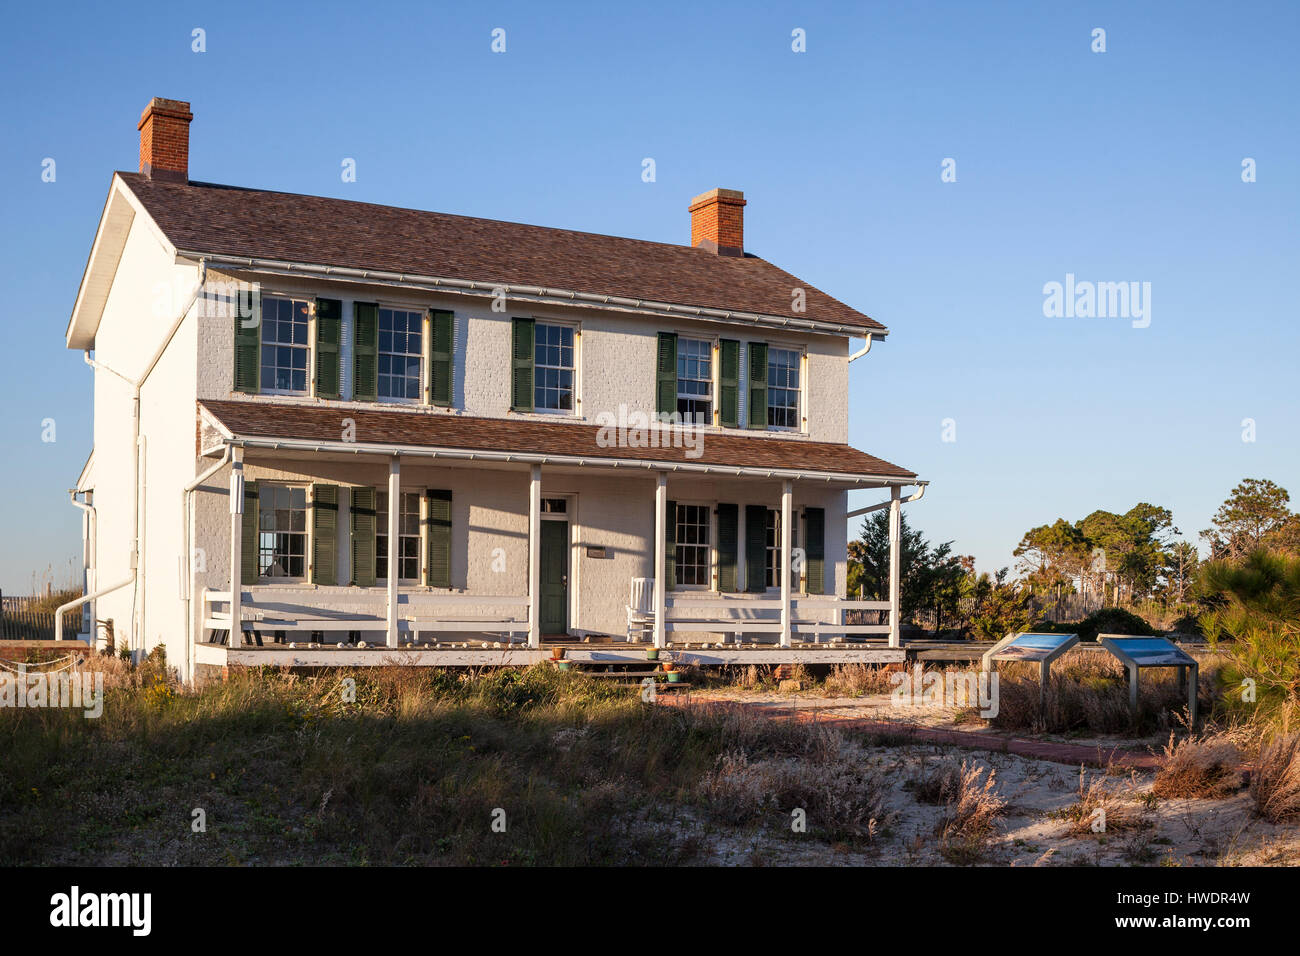 NC00867-00...NORTH CAROLINA - Lighthouse keepers house at Cape Lookout National Seashore on the South Core Banks. - Stock Image